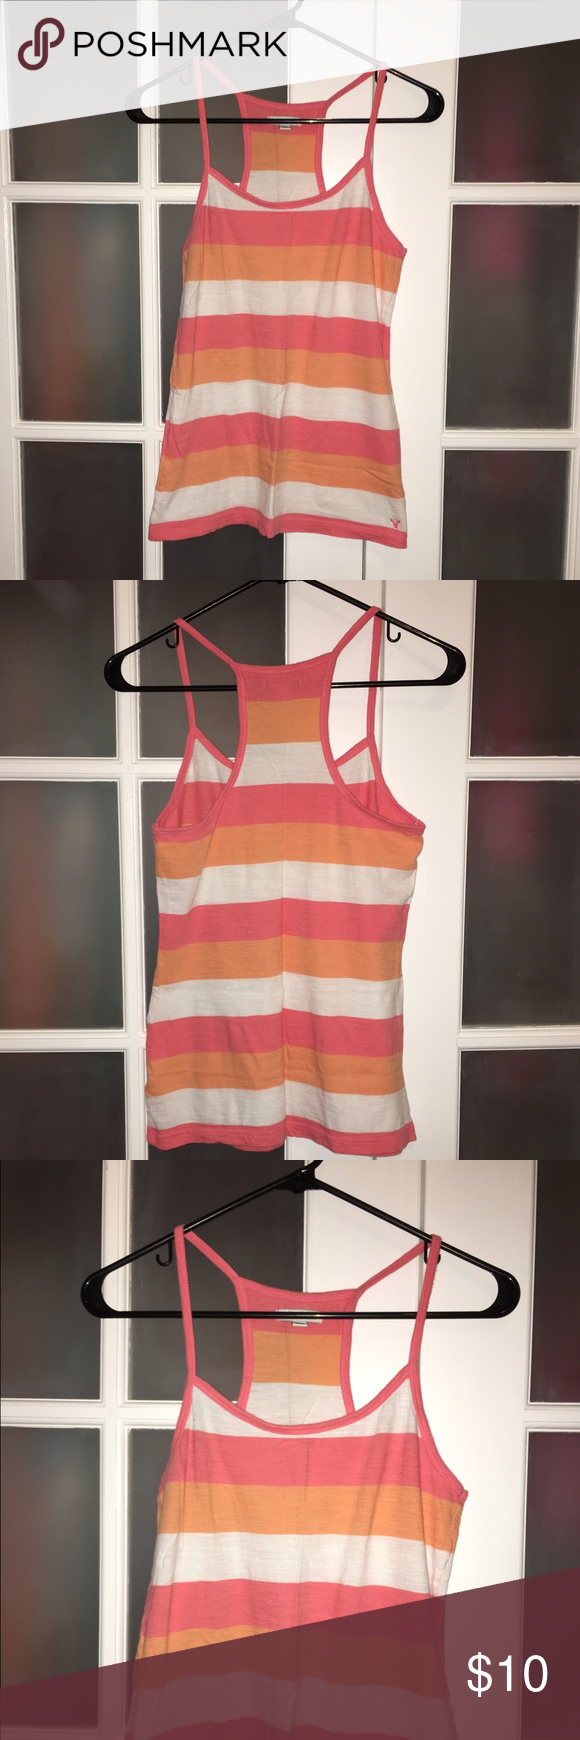 "Strapless Tank from American Eagle This is a great spaghetti strap tank from American Eagle. White, light pink and light orange stripes design. Lightweight and thin. Great to hang out in, sleep in or as a cover up over a sports bra or bikini top. U-neck. Racer back. No holes or stains. 25"" long and 26"" wide. 100% cotton. Will not shrink. Machine wash hot or cold and machine dry. Comes from a smoke free home. **No PayPal and may bundle** **NO TRADES** American Eagle Outfitters Tops Tank Tops"